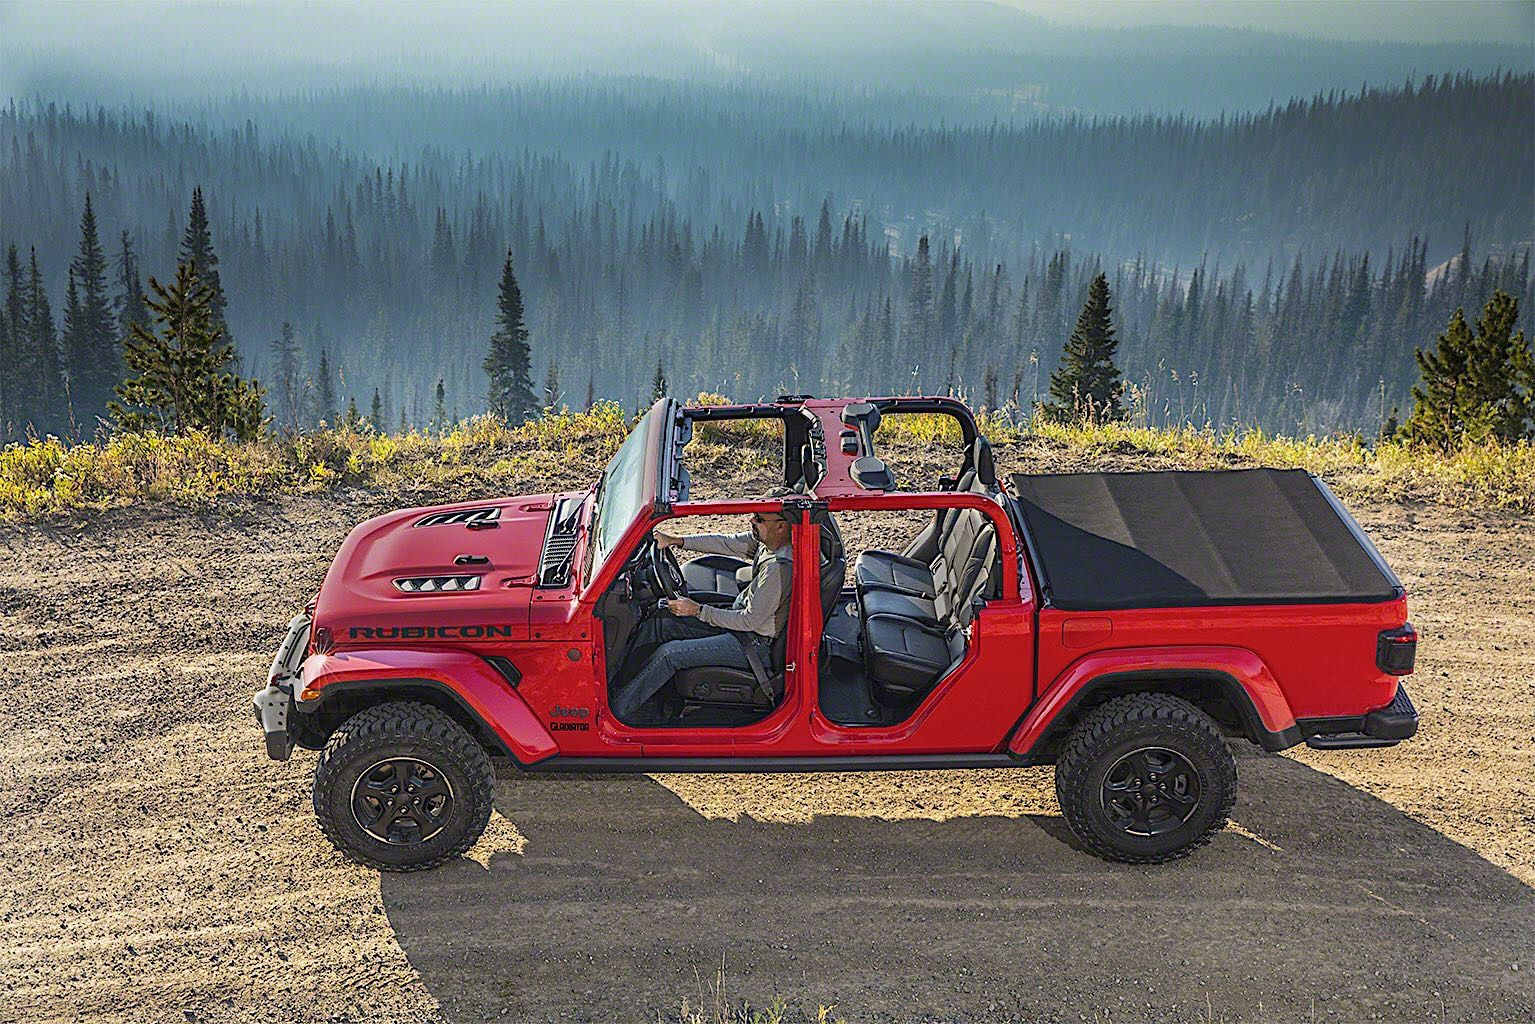 2020 Jeep Gladiator Pickup Truck The Only Open Air 4x4 Truck In